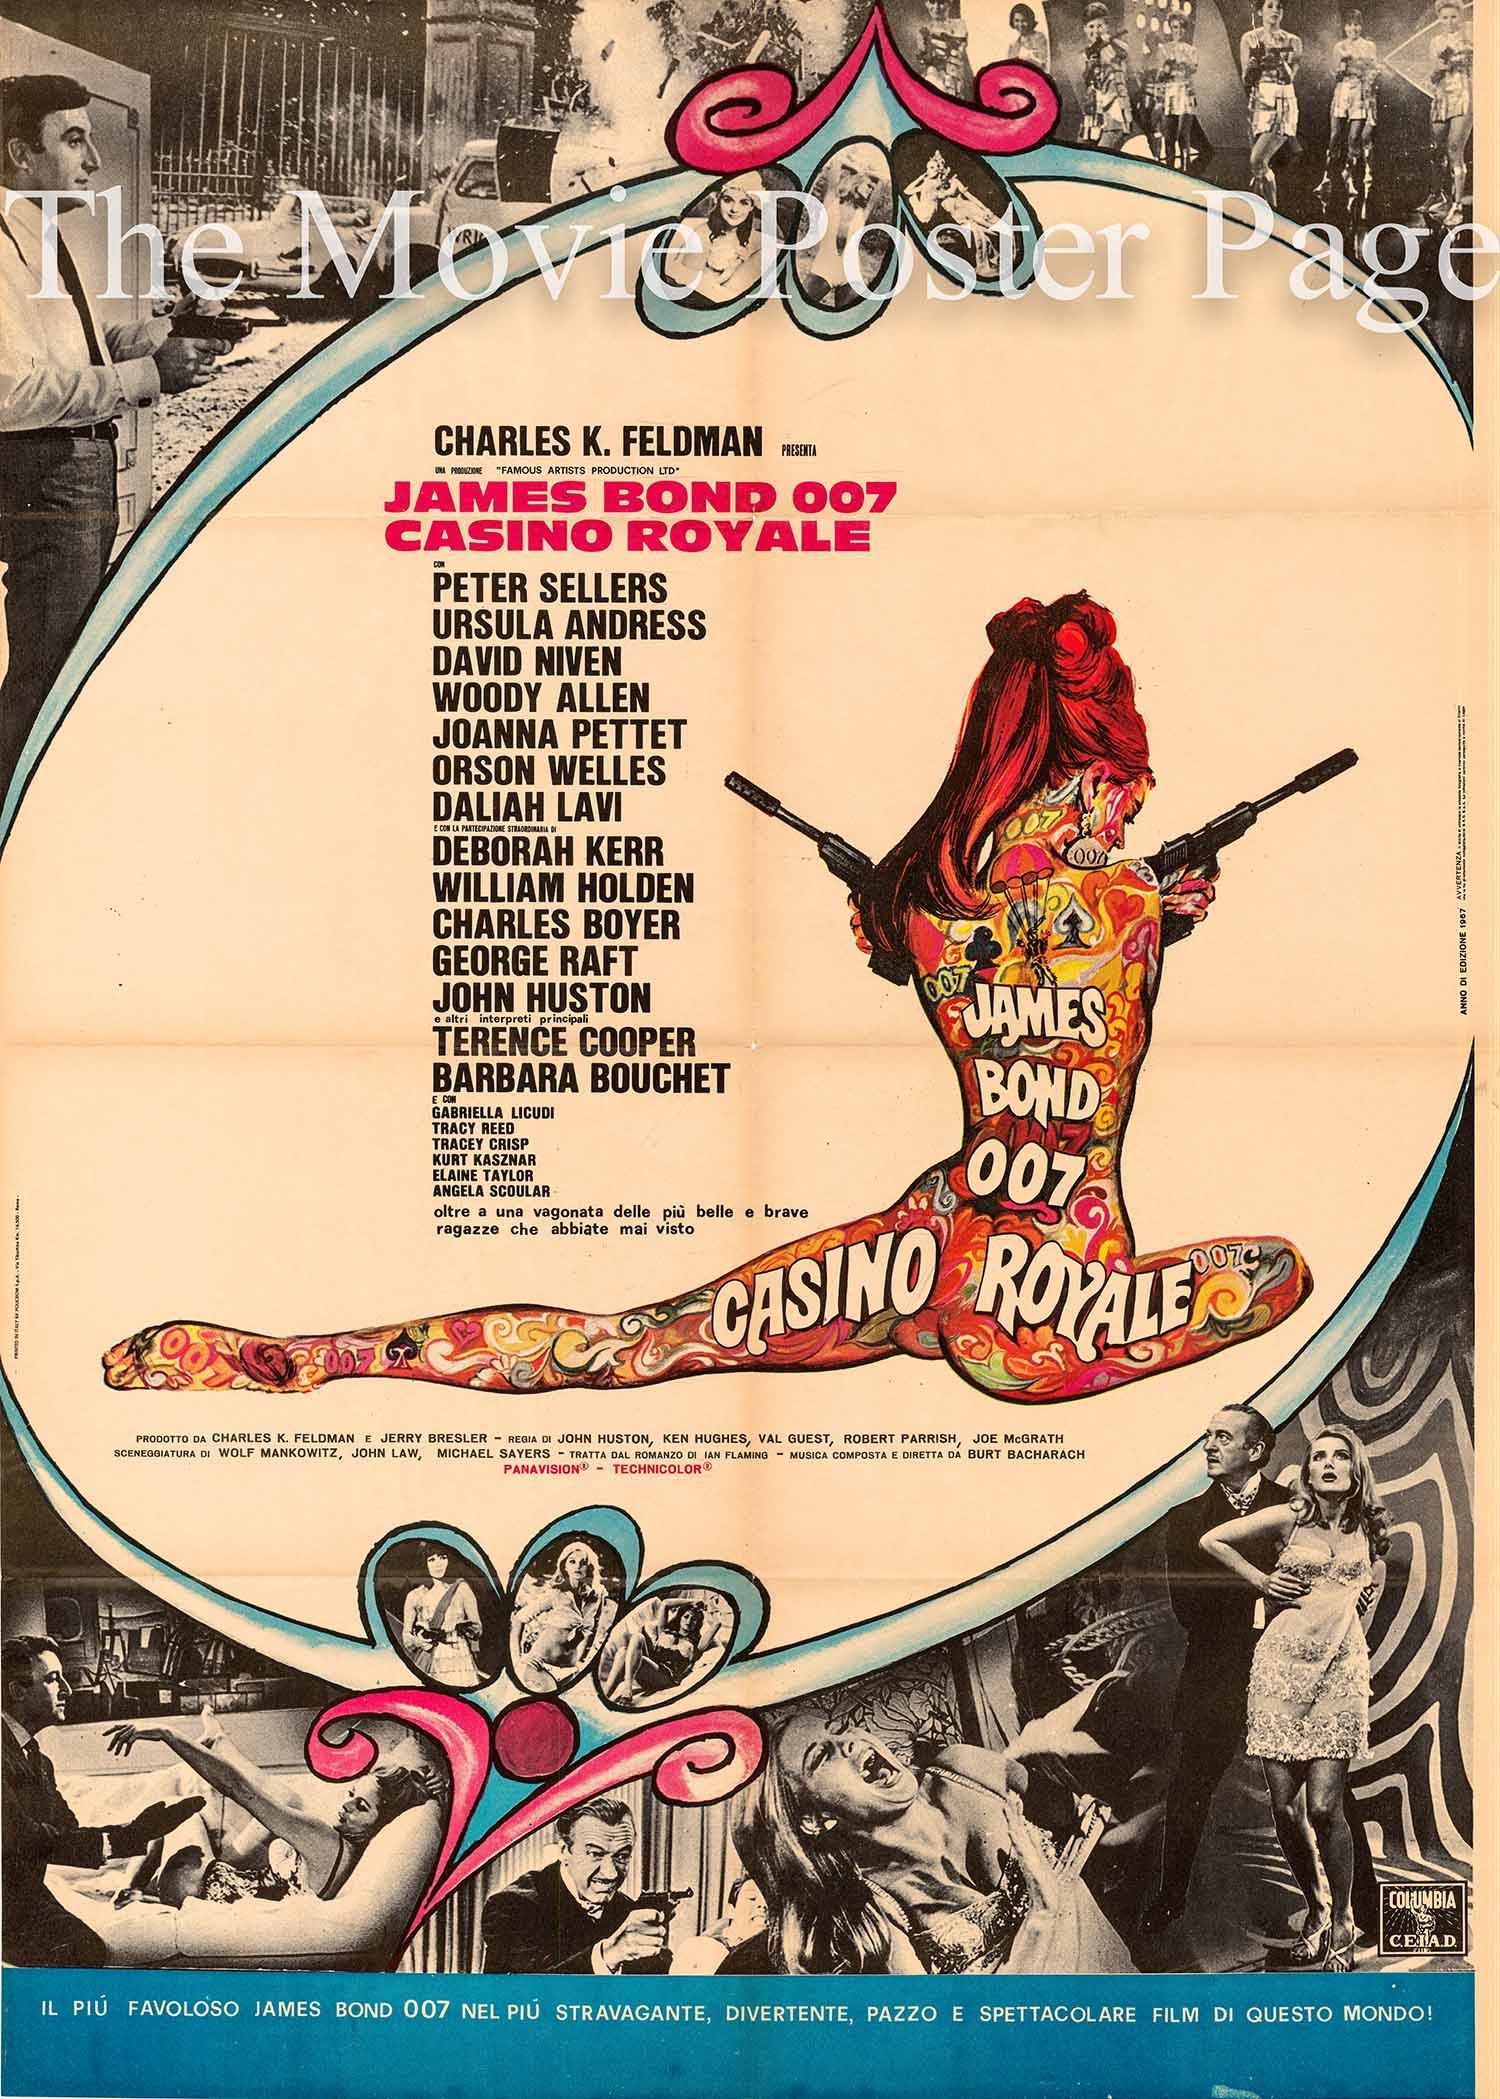 This is an Italian two-sheet poster designed to promote the 1967 Ken Hughes and John Huston film Casino Royale starring Peter Sellers as James bond.